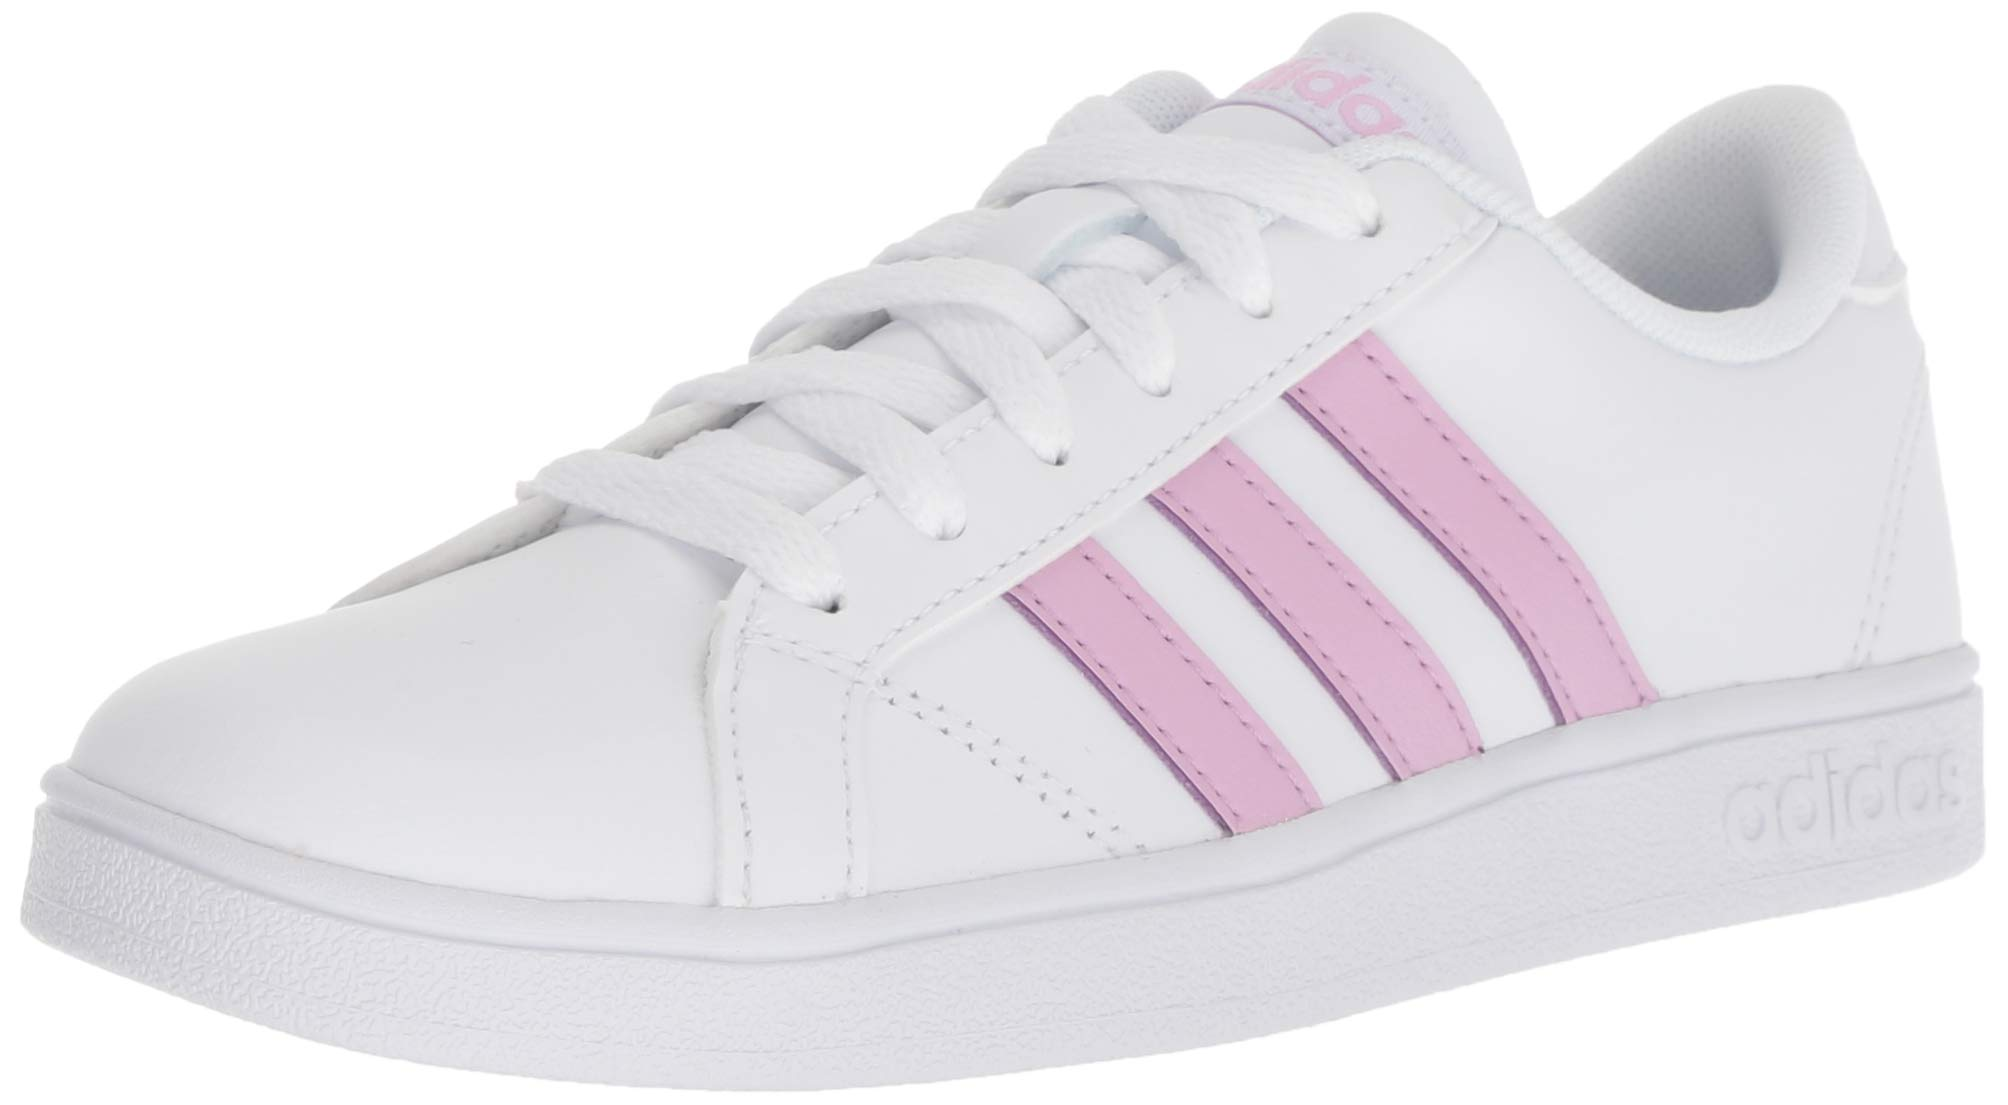 adidas Performance Unisex-Kids Baseline, White/Clear Lilac/White, 3.5 M US Big Kid